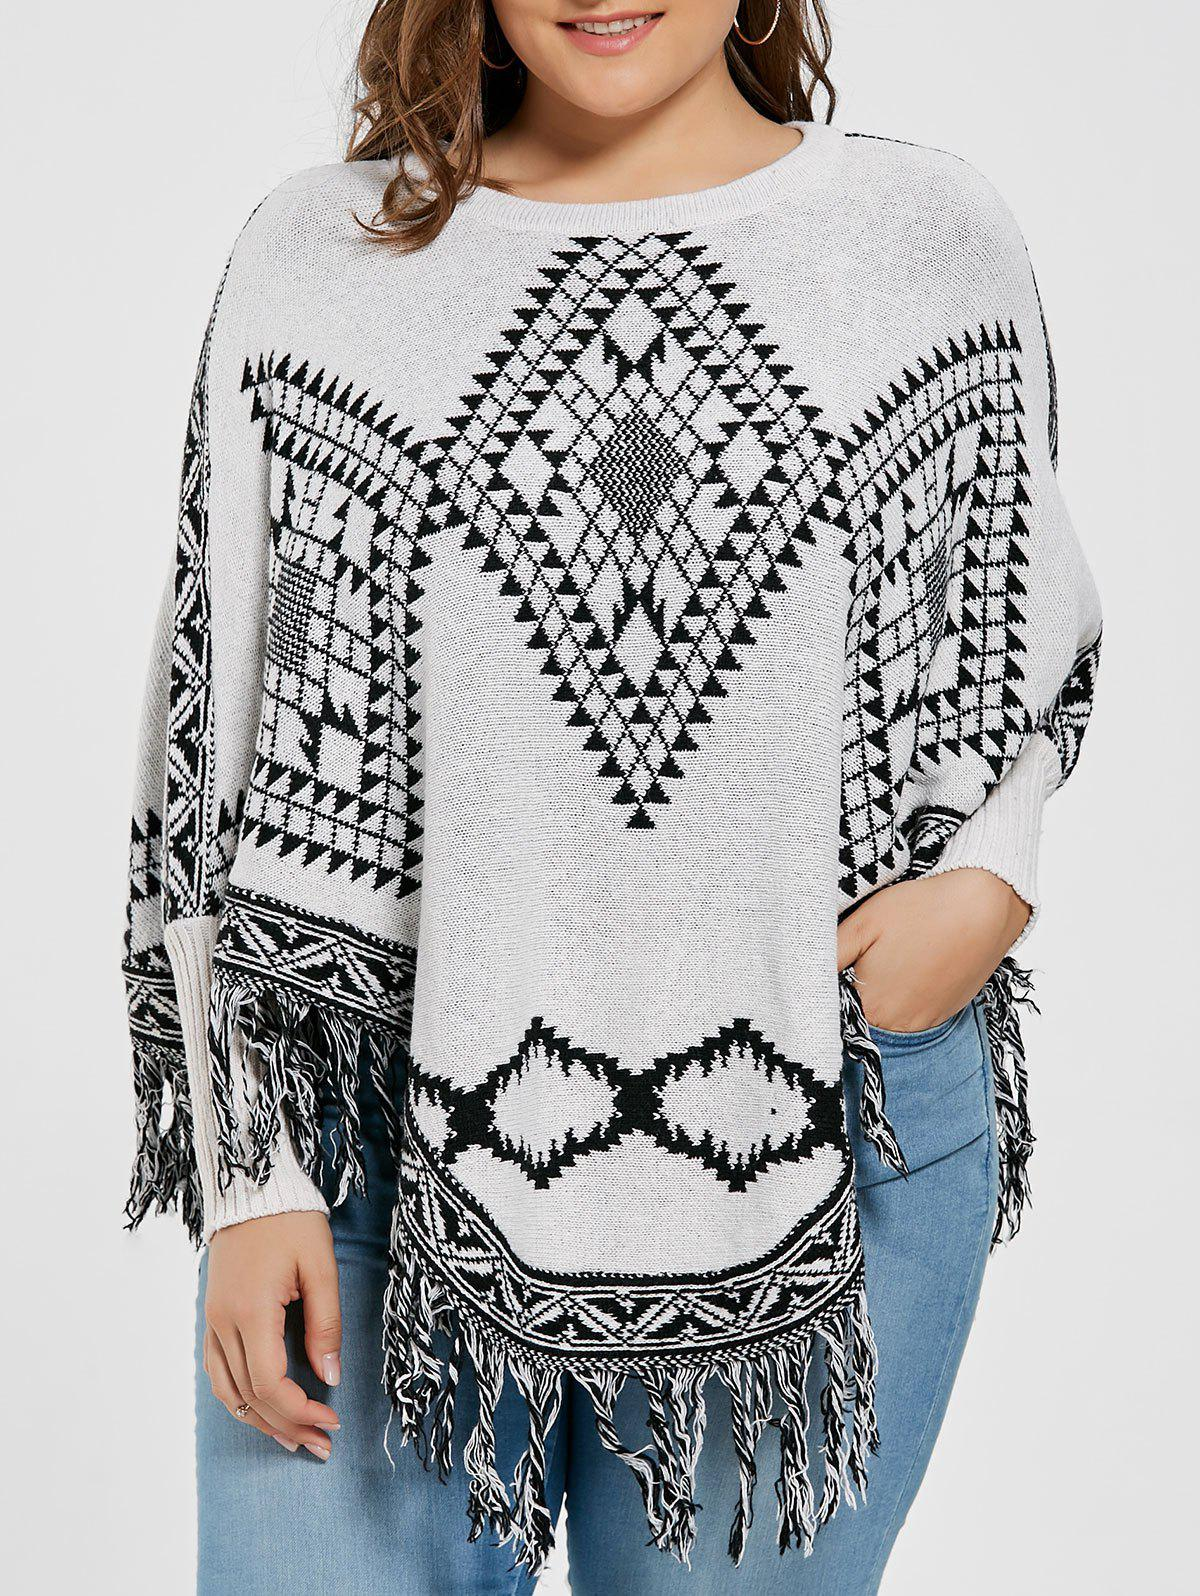 Geometric Fringed Plus Size Poncho SweaterWOMEN<br><br>Size: ONE SIZE; Color: LIGHT GREY; Type: Pullovers; Material: Polyester,Spandex; Sleeve Length: Full; Collar: Crew Neck; Style: Fashion; Season: Fall; Pattern Type: Geometric; Weight: 0.5500kg; Package Contents: 1 x Sweater;